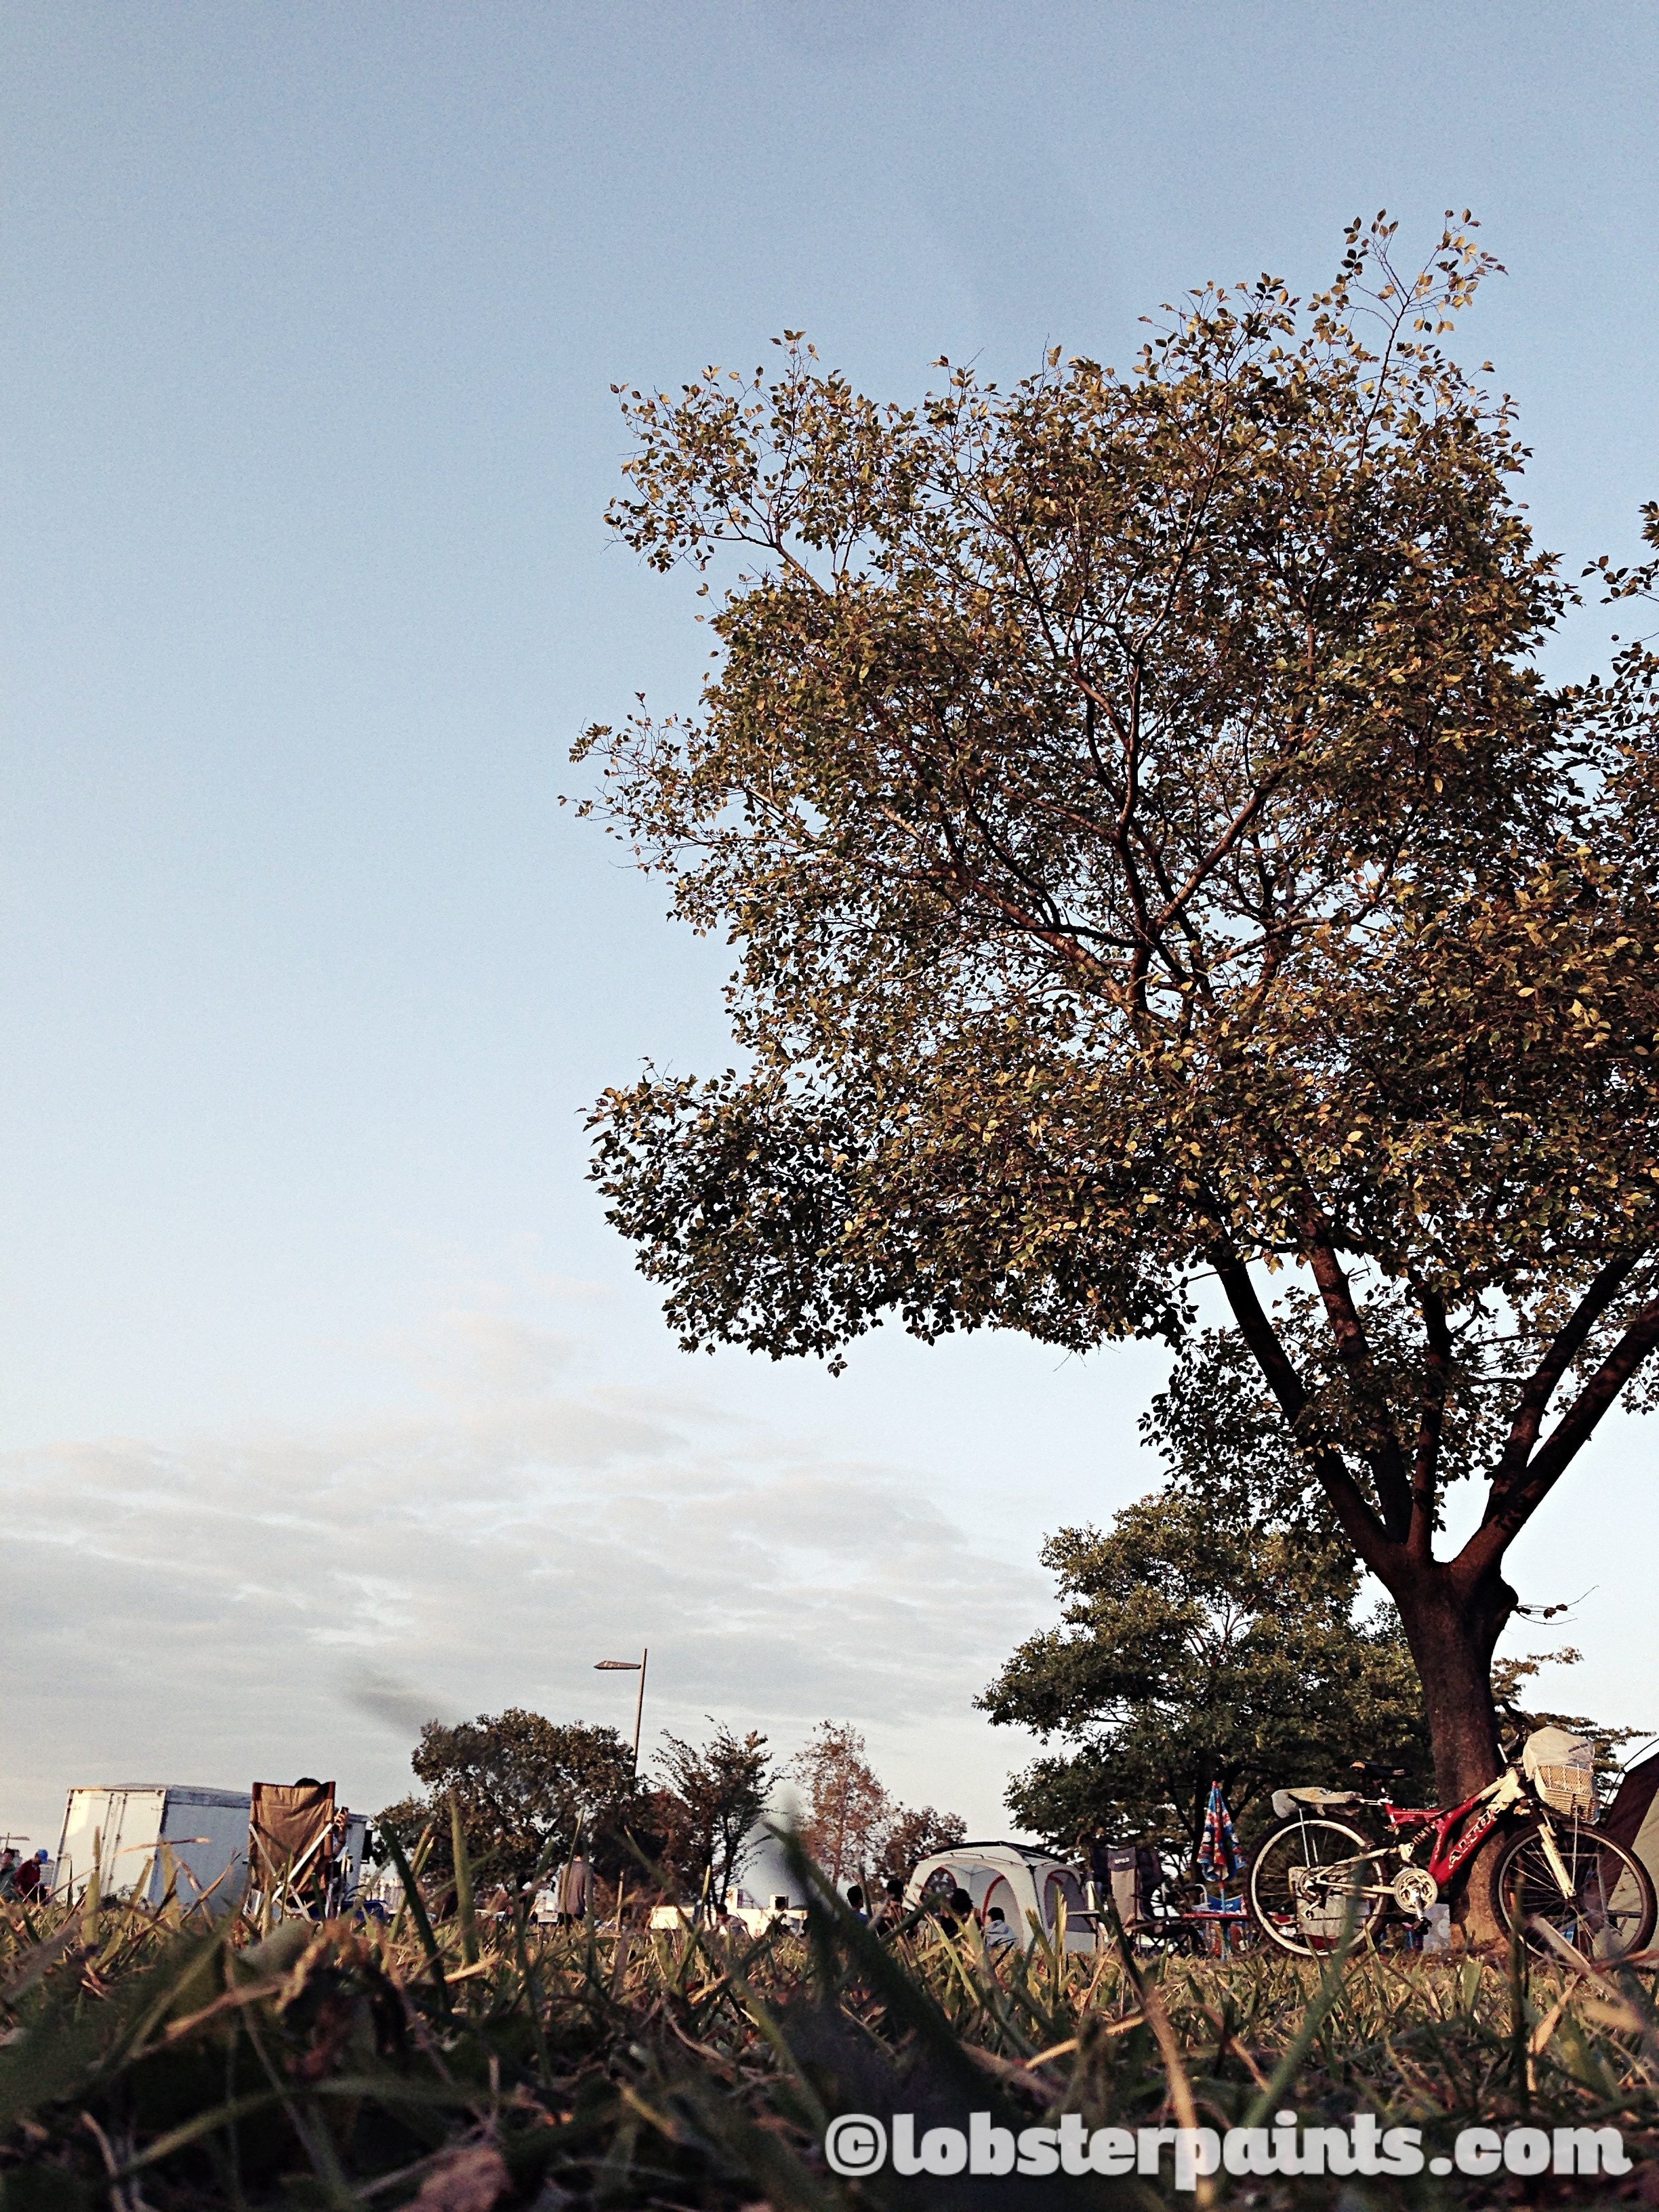 5 Oct 2014: Hangang Park | Seoul, South Korea